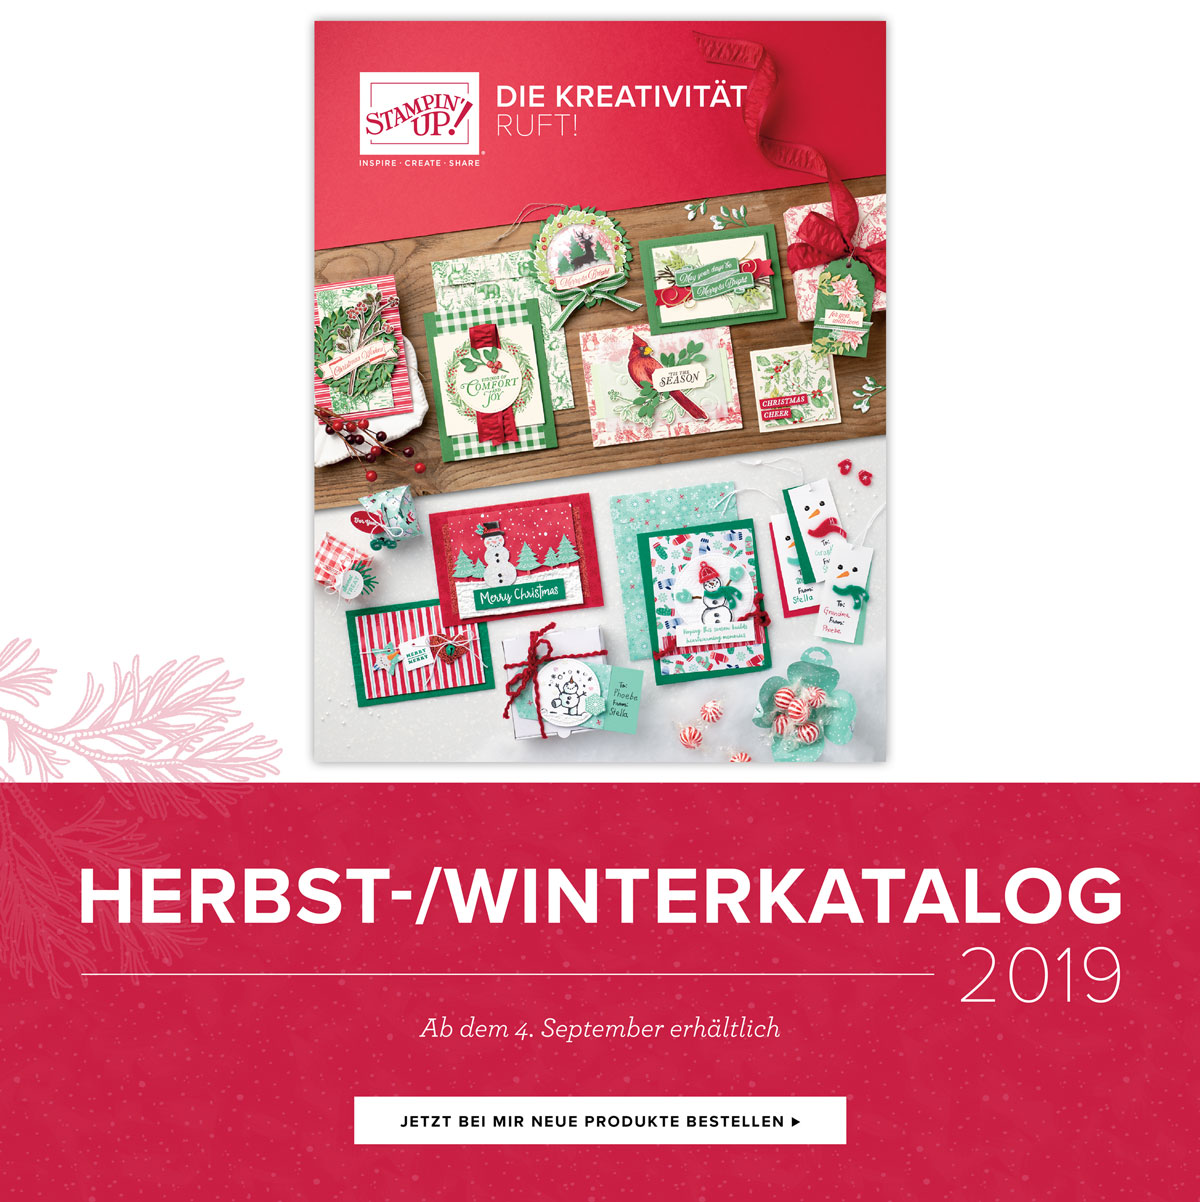 Herbst-Winter-Katalog 2019